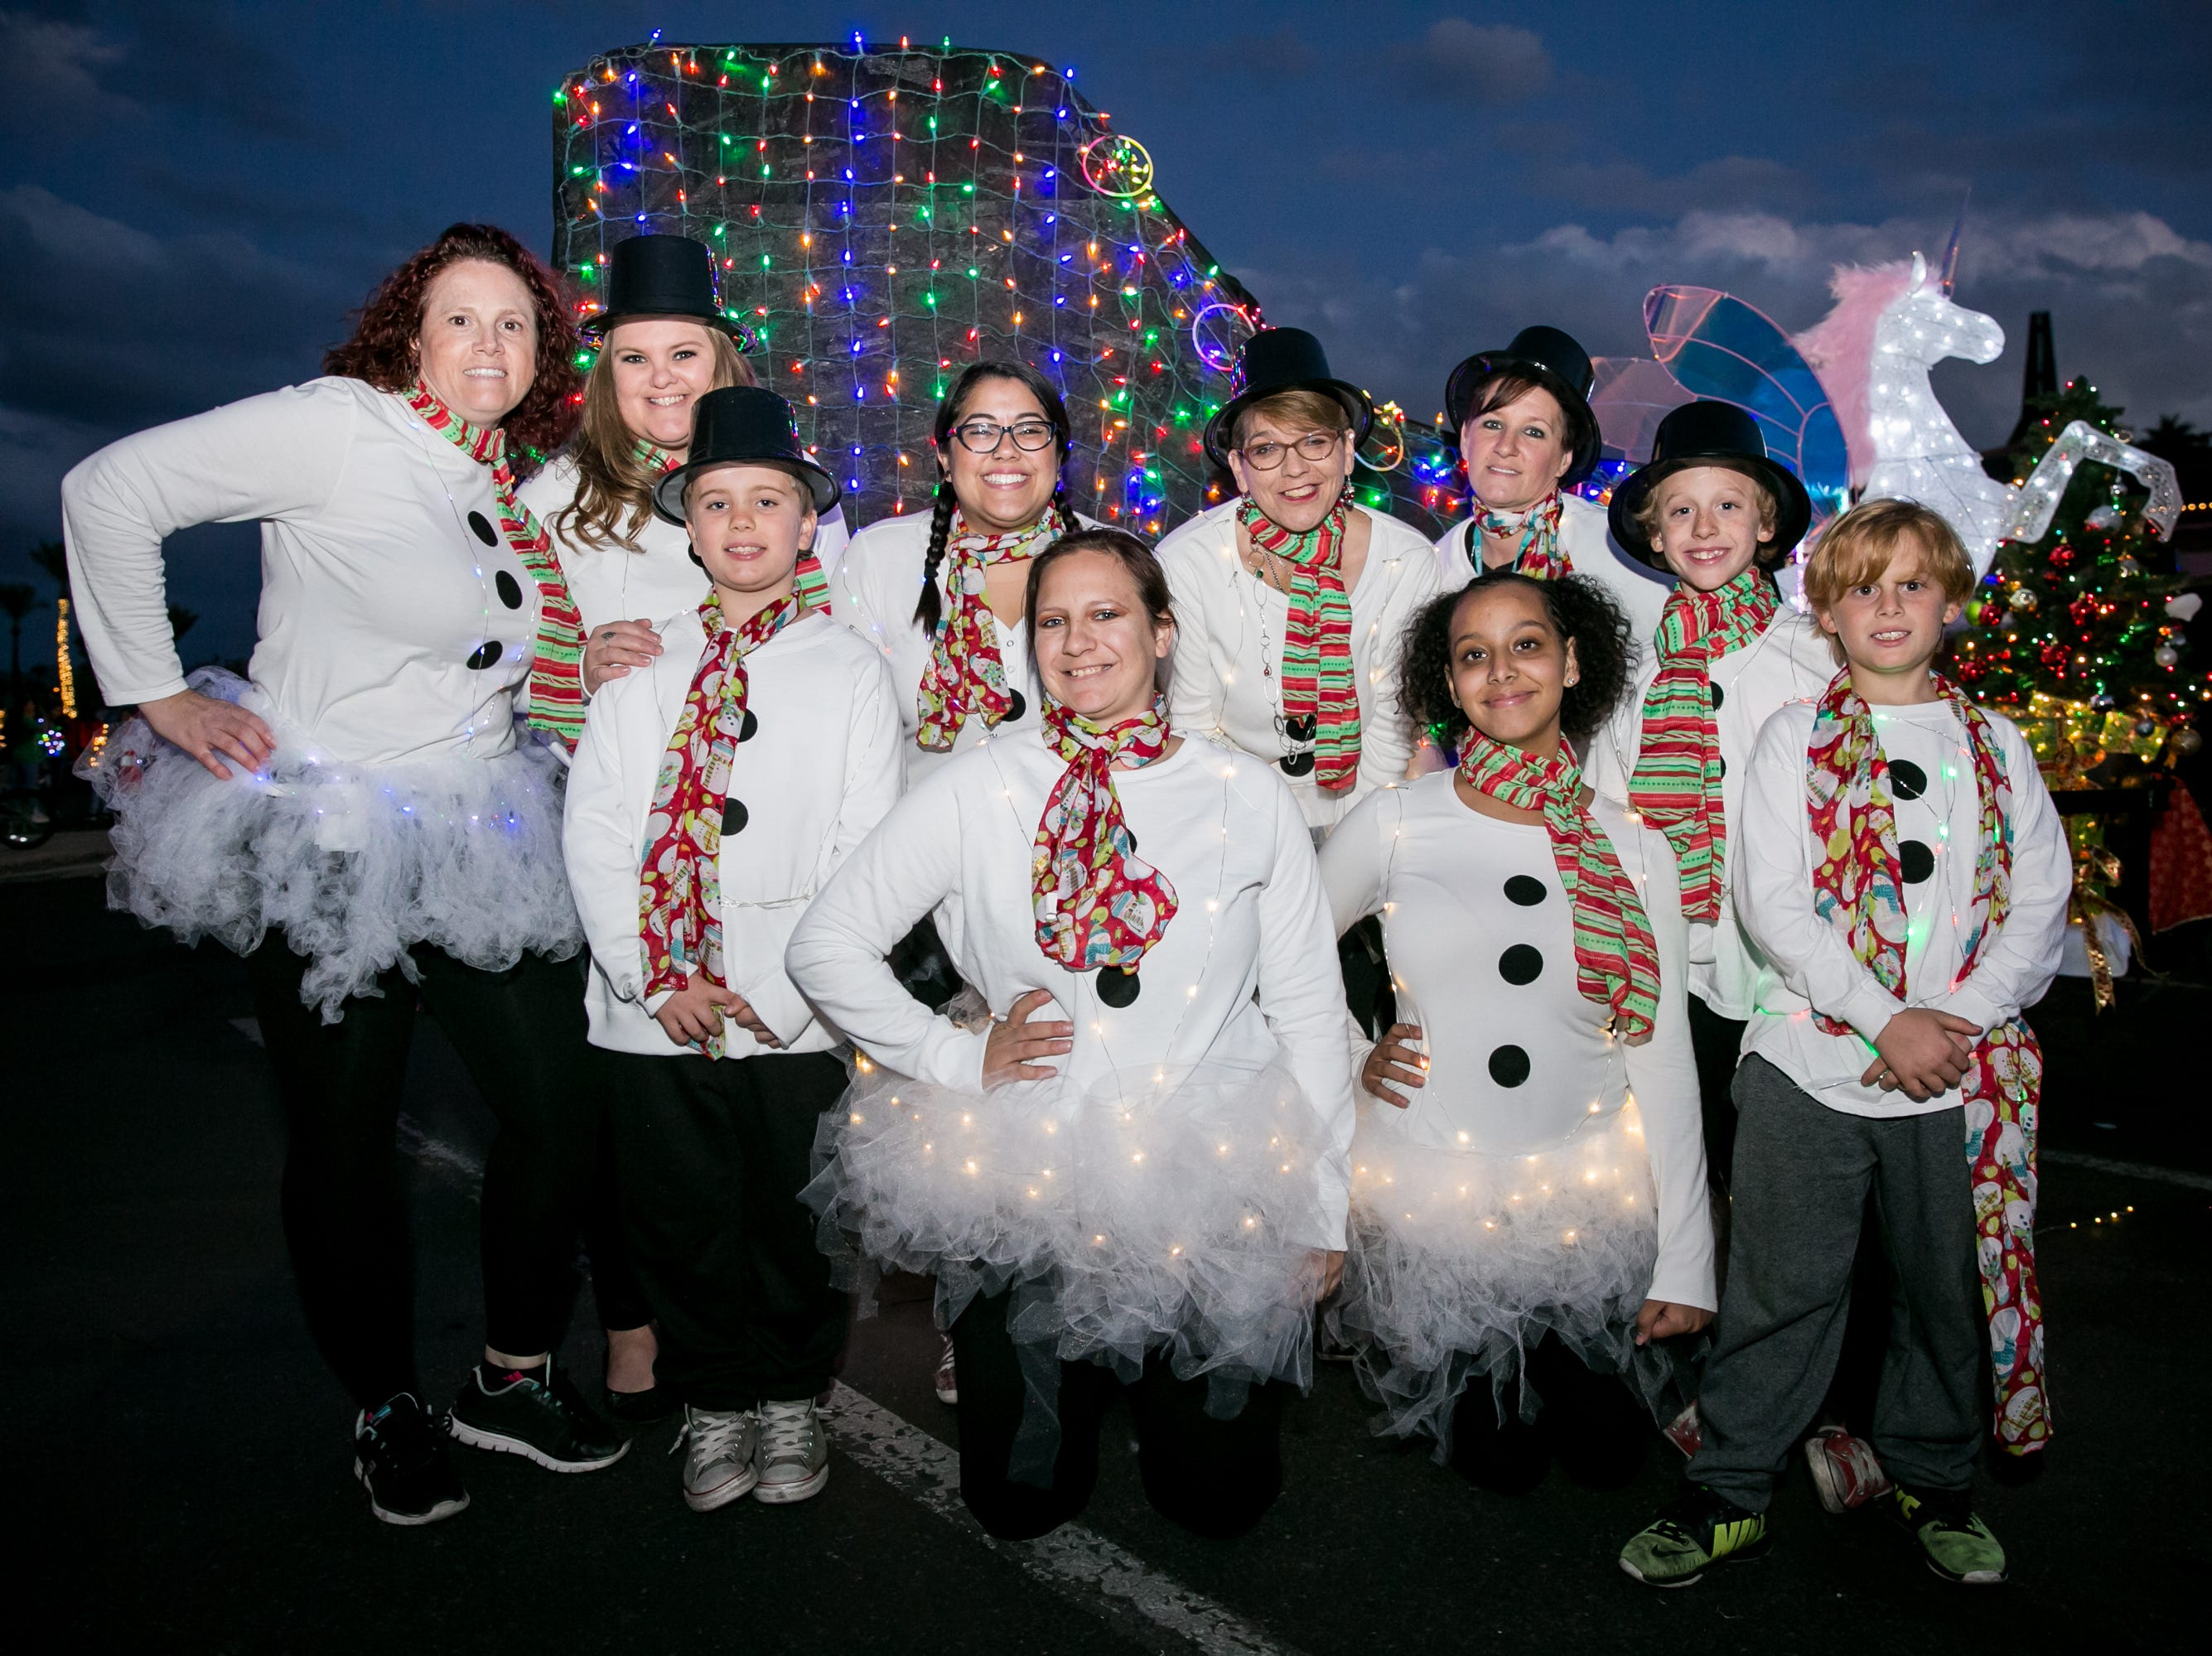 The Desert Dolls Roller Derby crew posed in front of a lit up skate during the APS Electric Light Parade in Central Phoenix on Saturday, December 1, 2018.